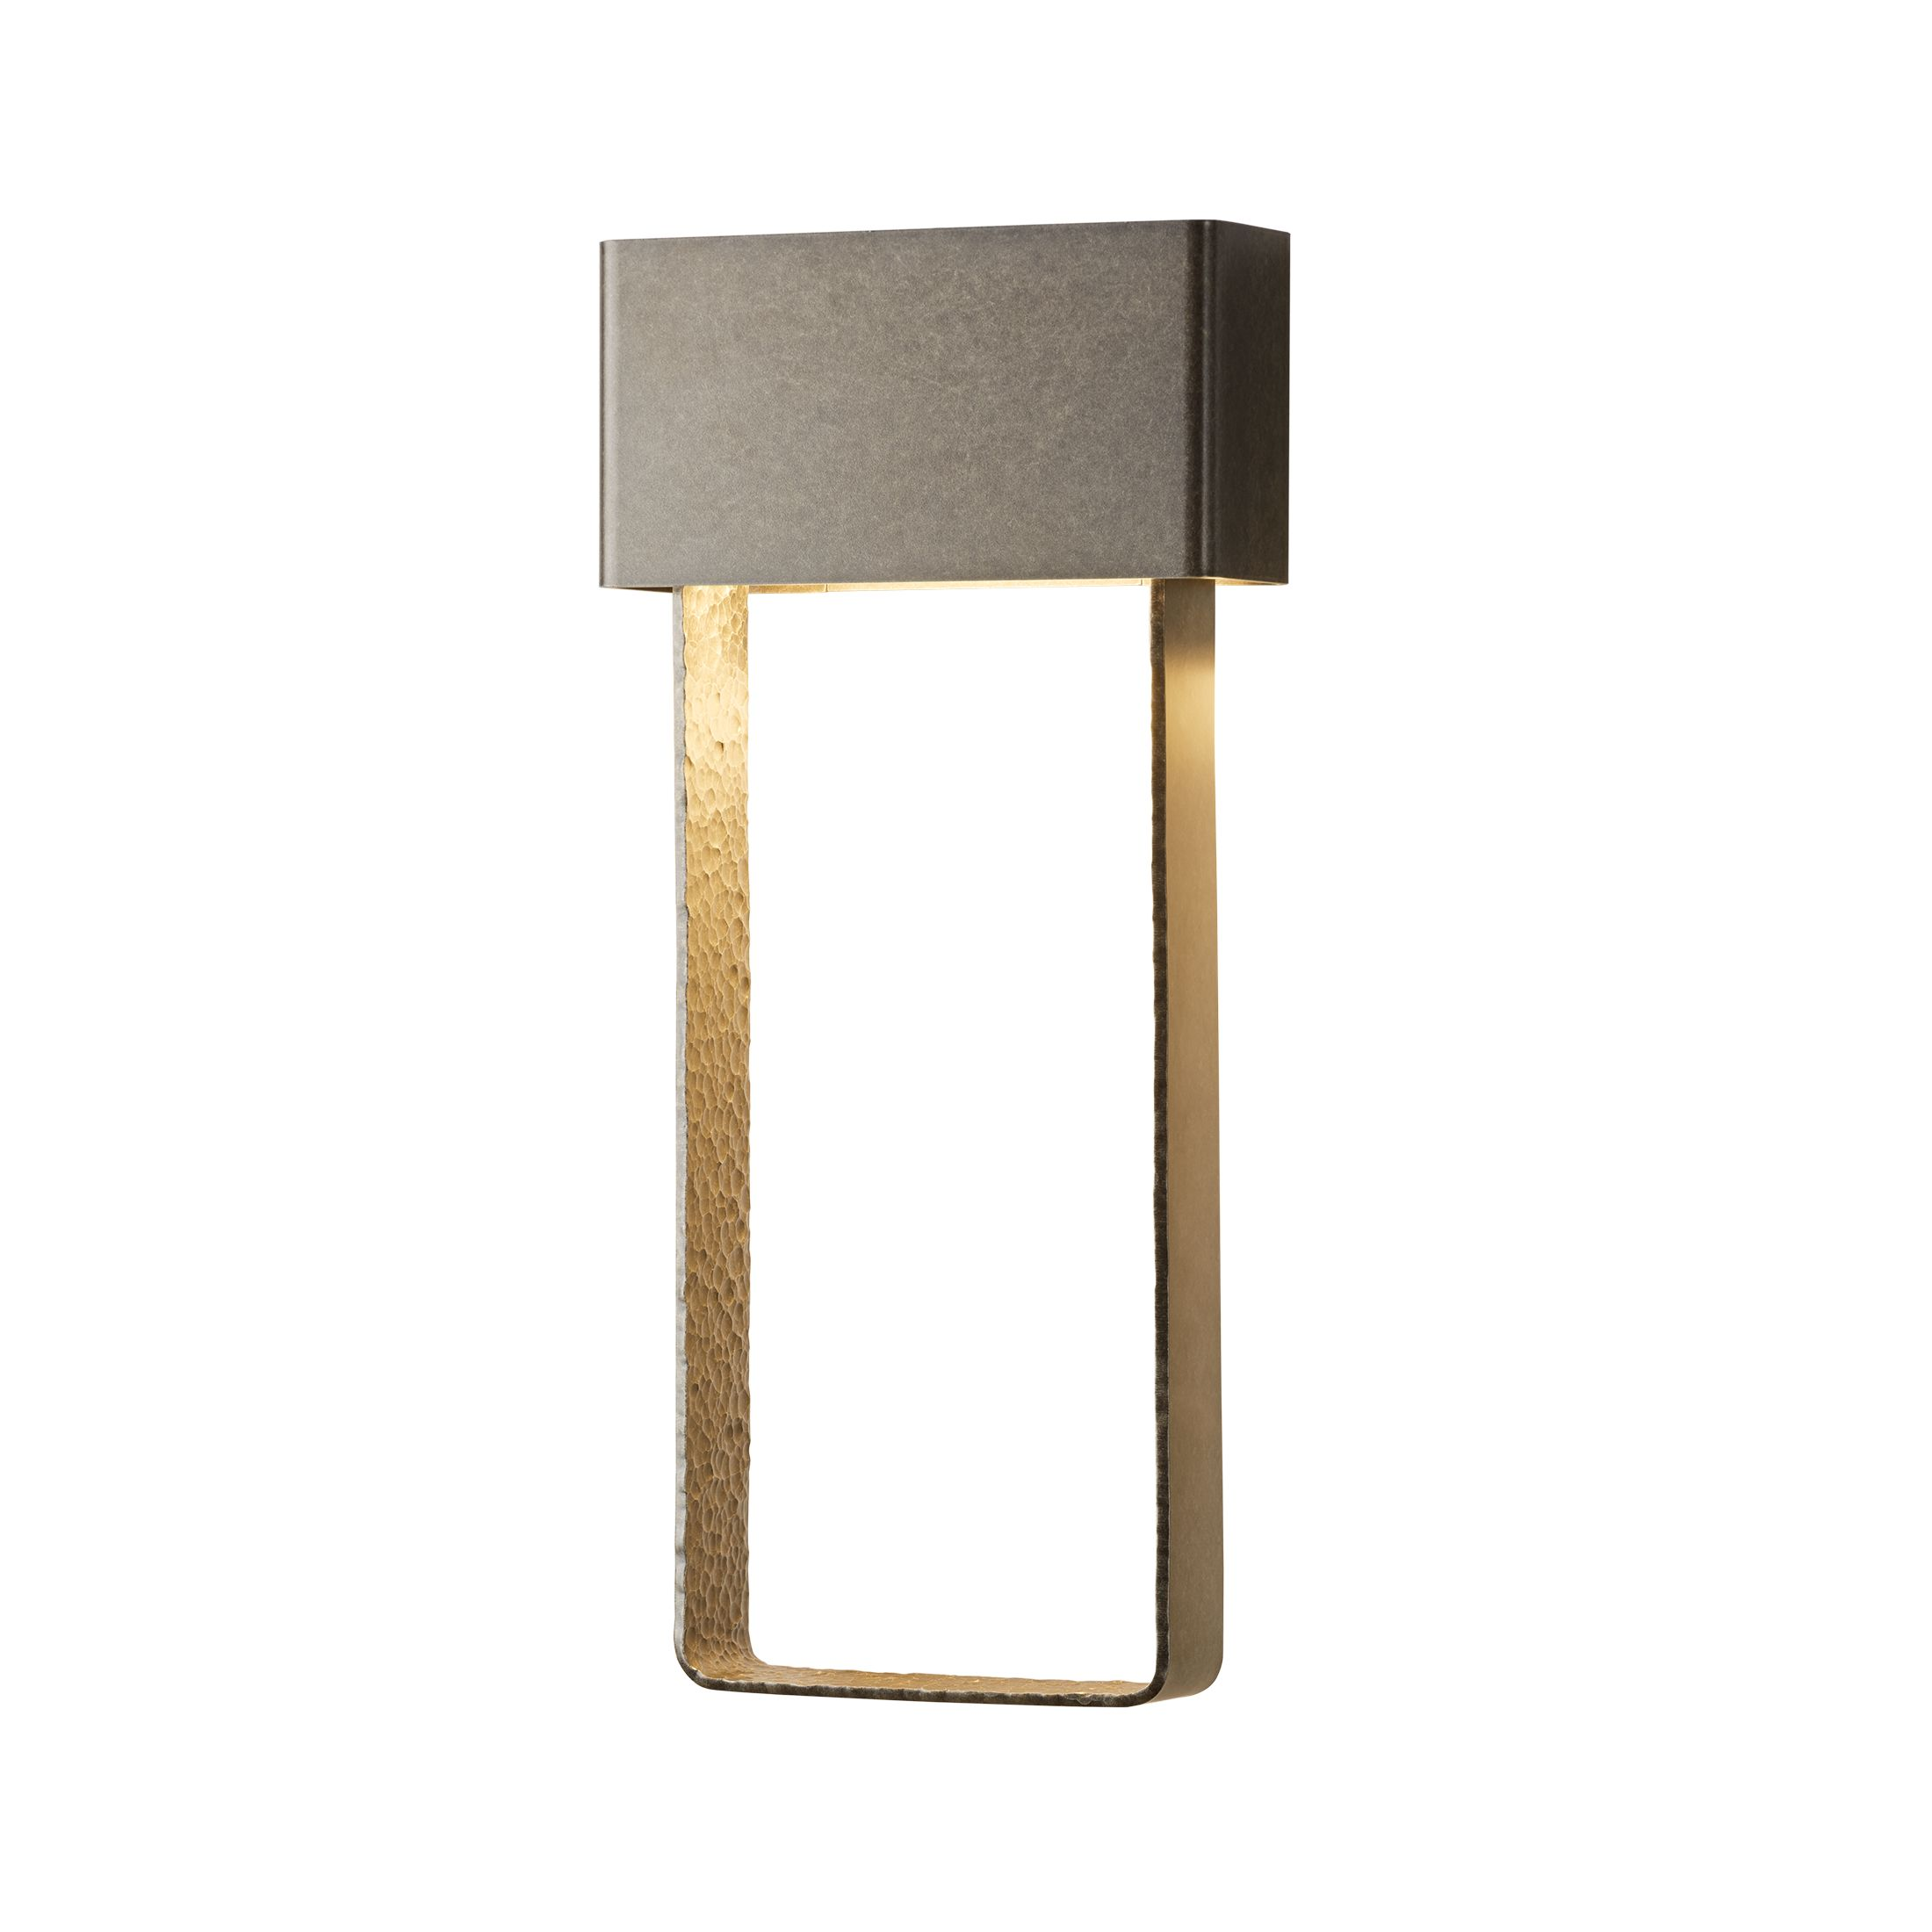 Thumbnail for Quad Large LED Outdoor Sconce